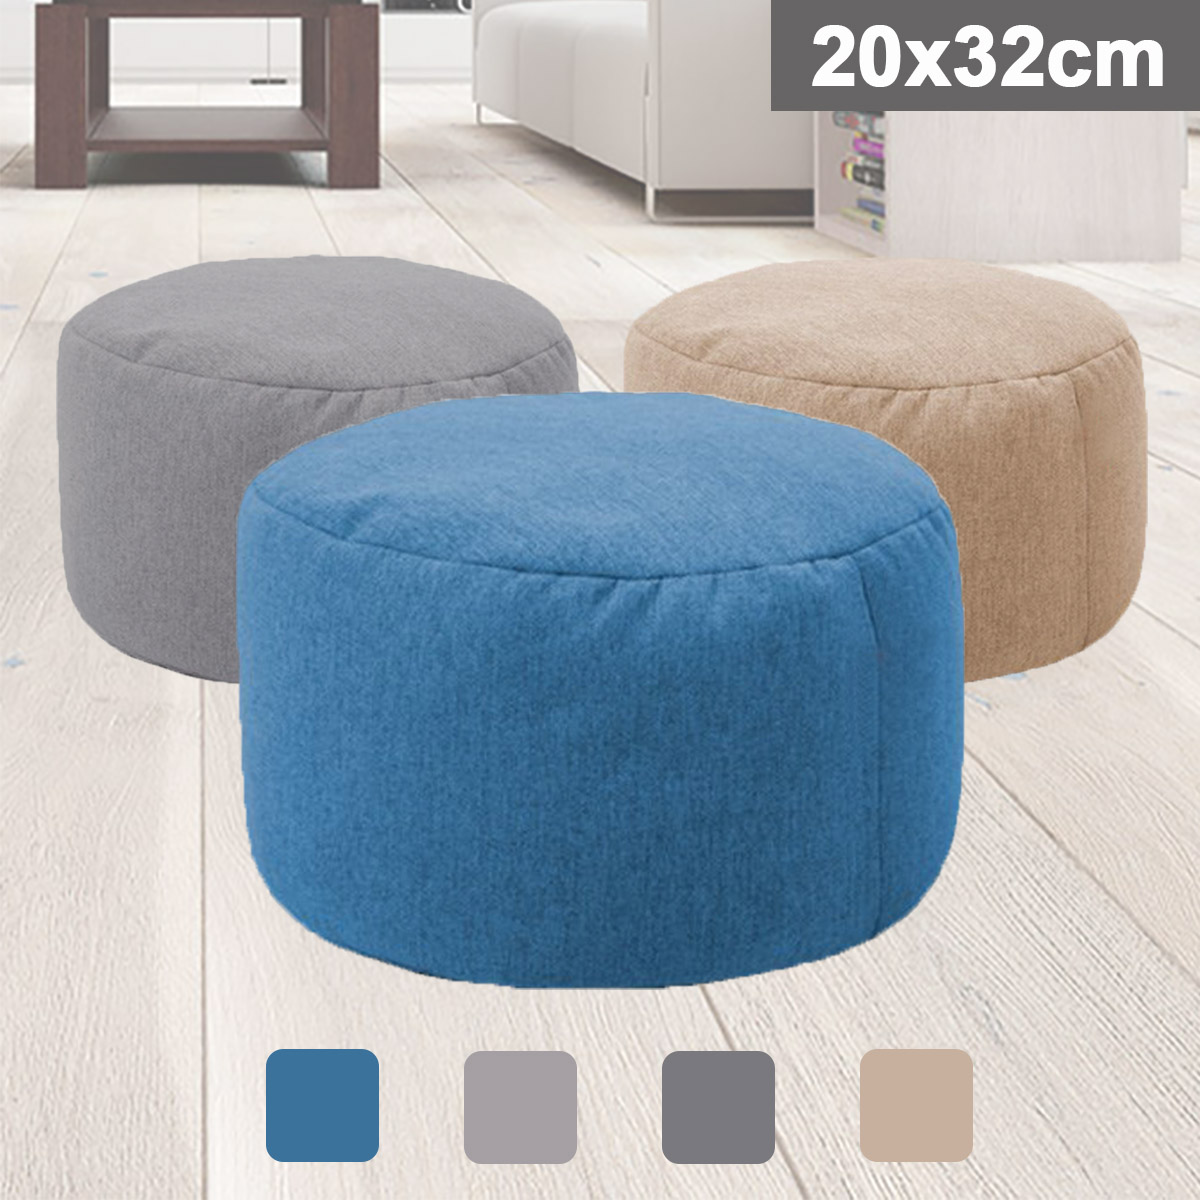 Small Round Lazy BeanBag Sofas Cover Waterproof Stuffed Animal Storage Toy Bean Bag Solid Color Chair Cover Beanbag SofasSmall Round Lazy BeanBag Sofas Cover Waterproof Stuffed Animal Storage Toy Bean Bag Solid Color Chair Cover Beanbag Sofas